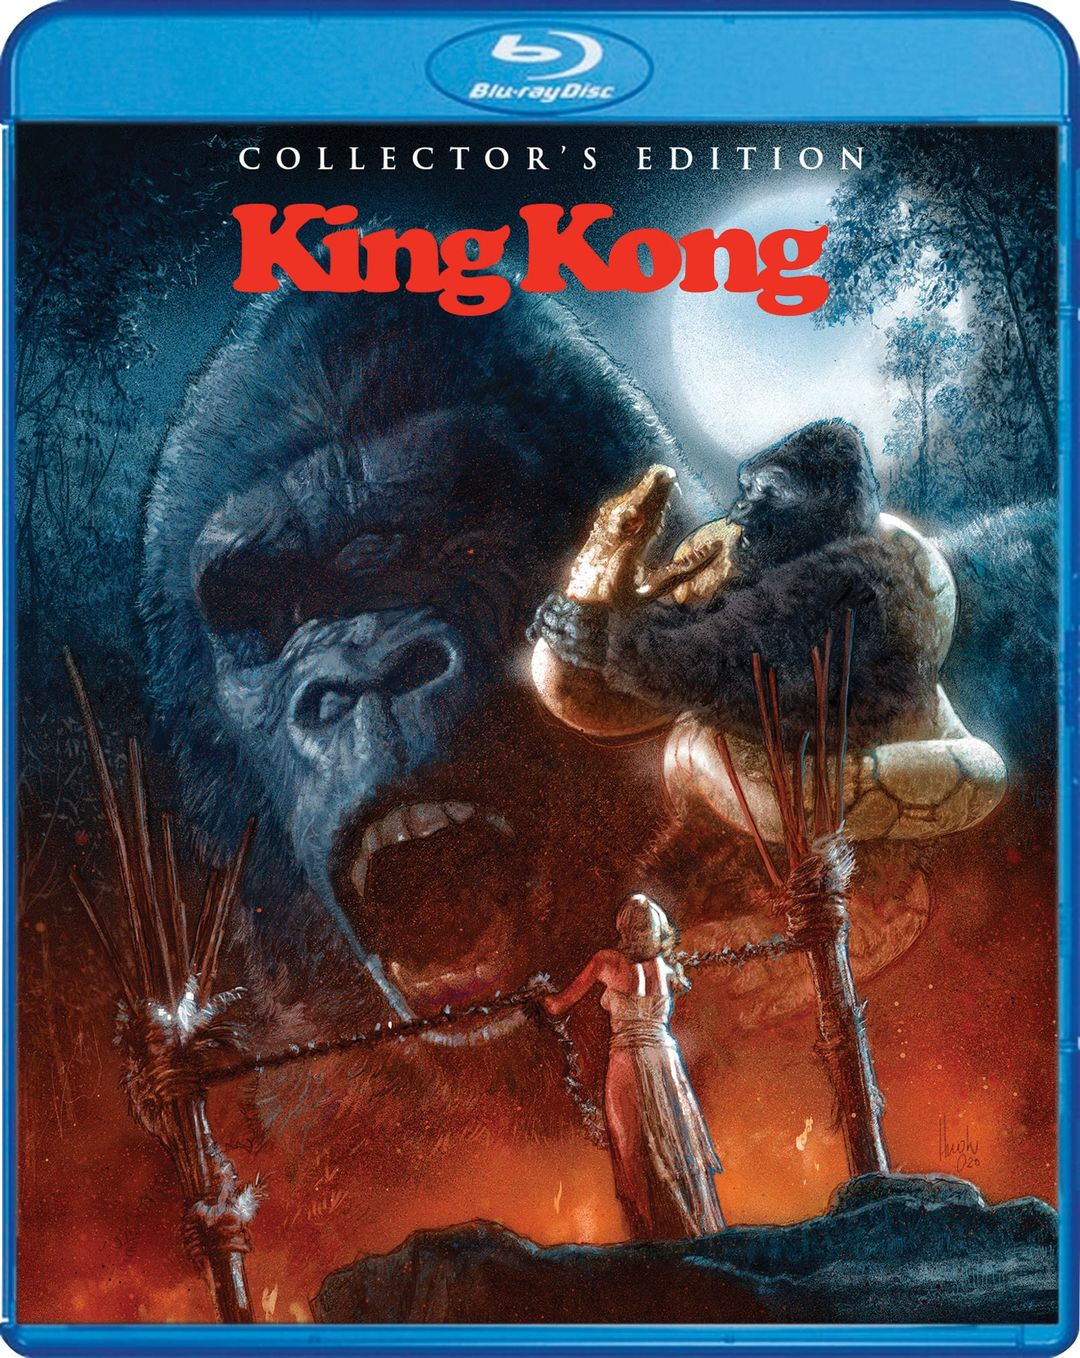 KING KONG COLLECTOR'S EDITION NOW AVAILABLE FROM SCREAM FACTORY